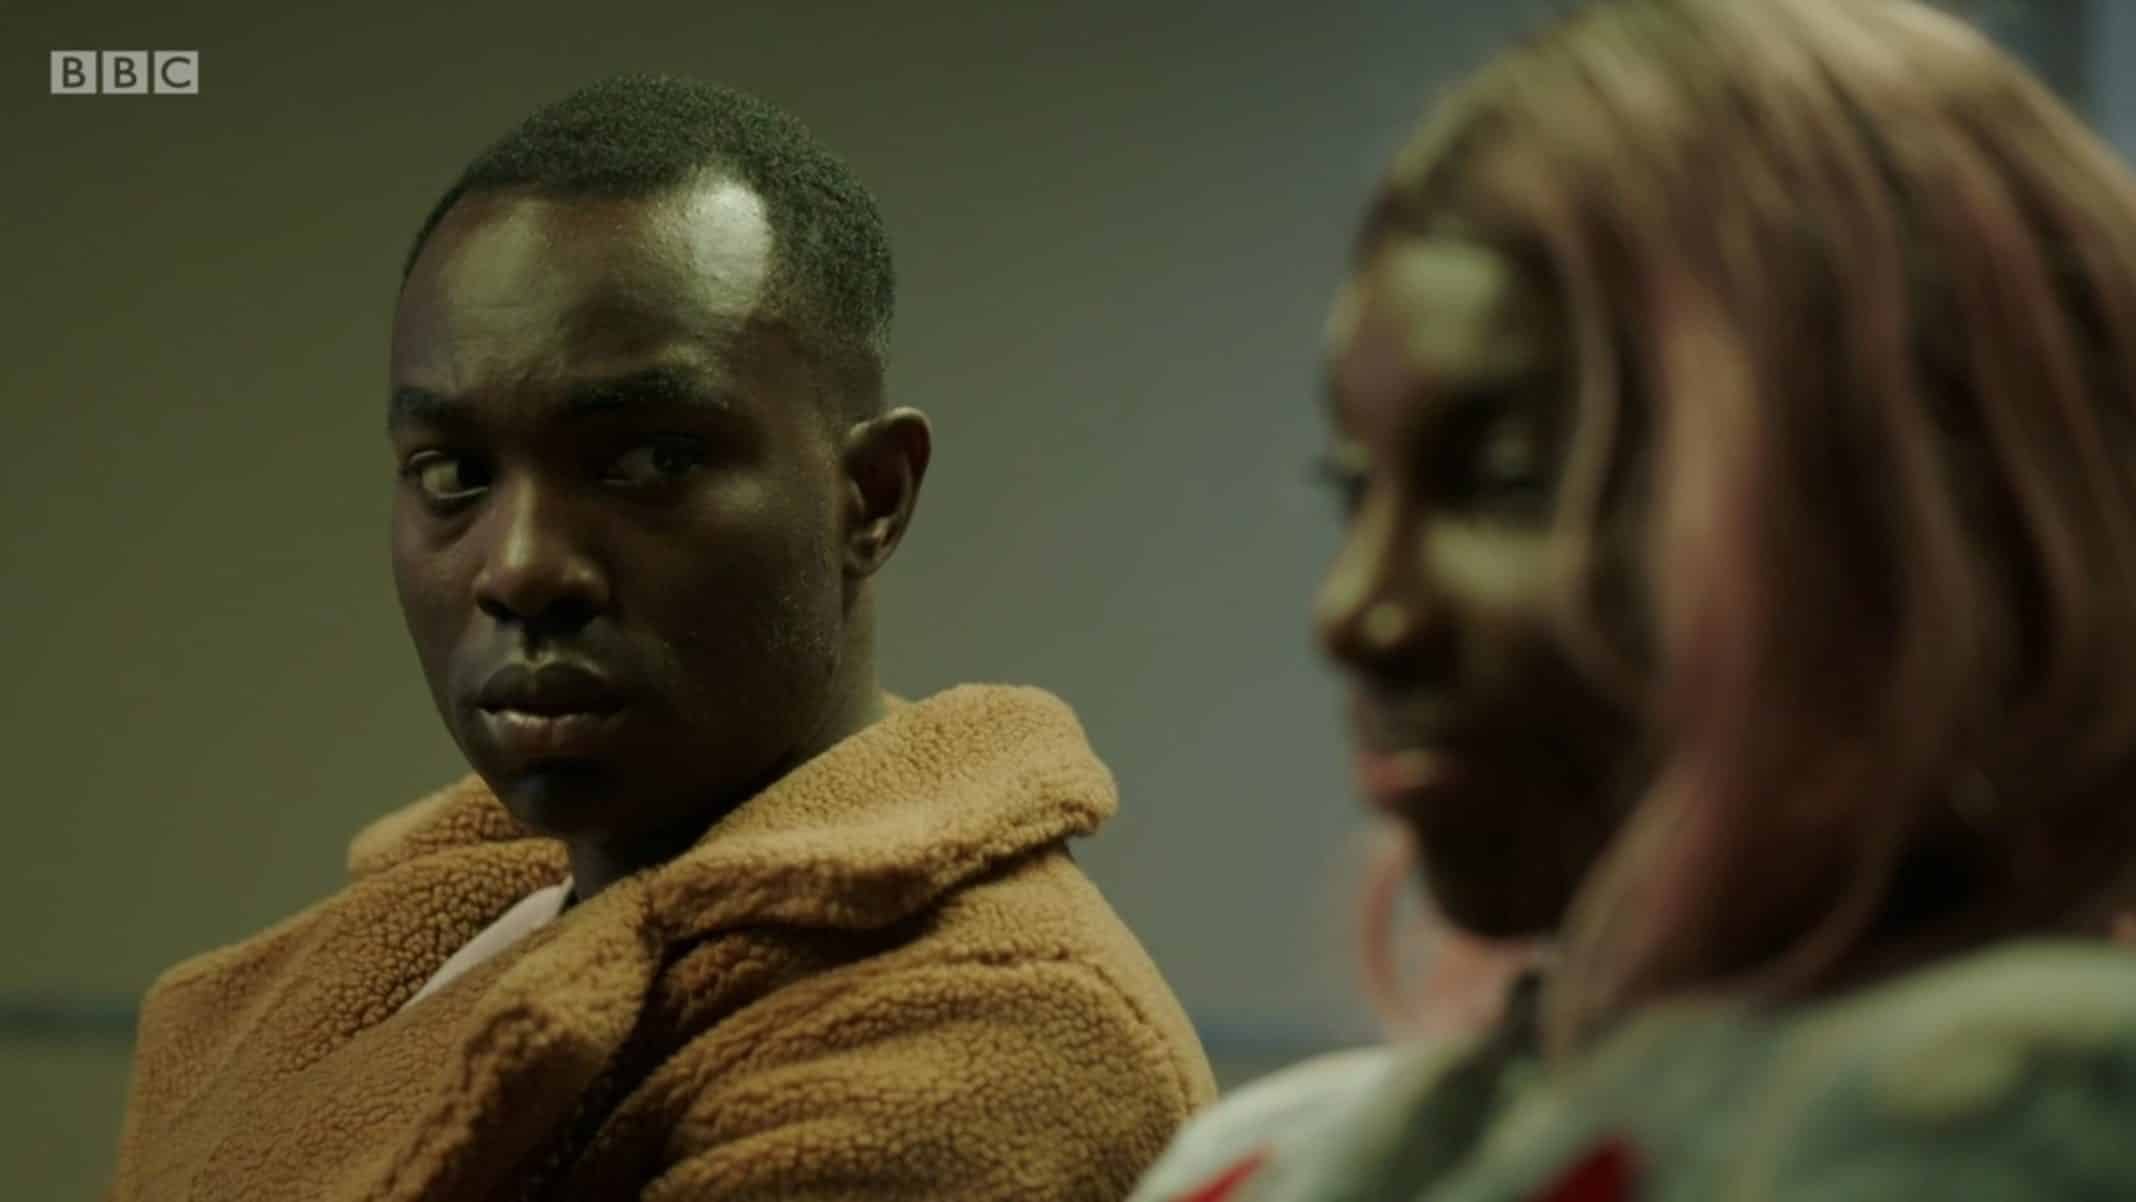 Kwame (Paapa Essiedu) realizing his friend was assaulted.